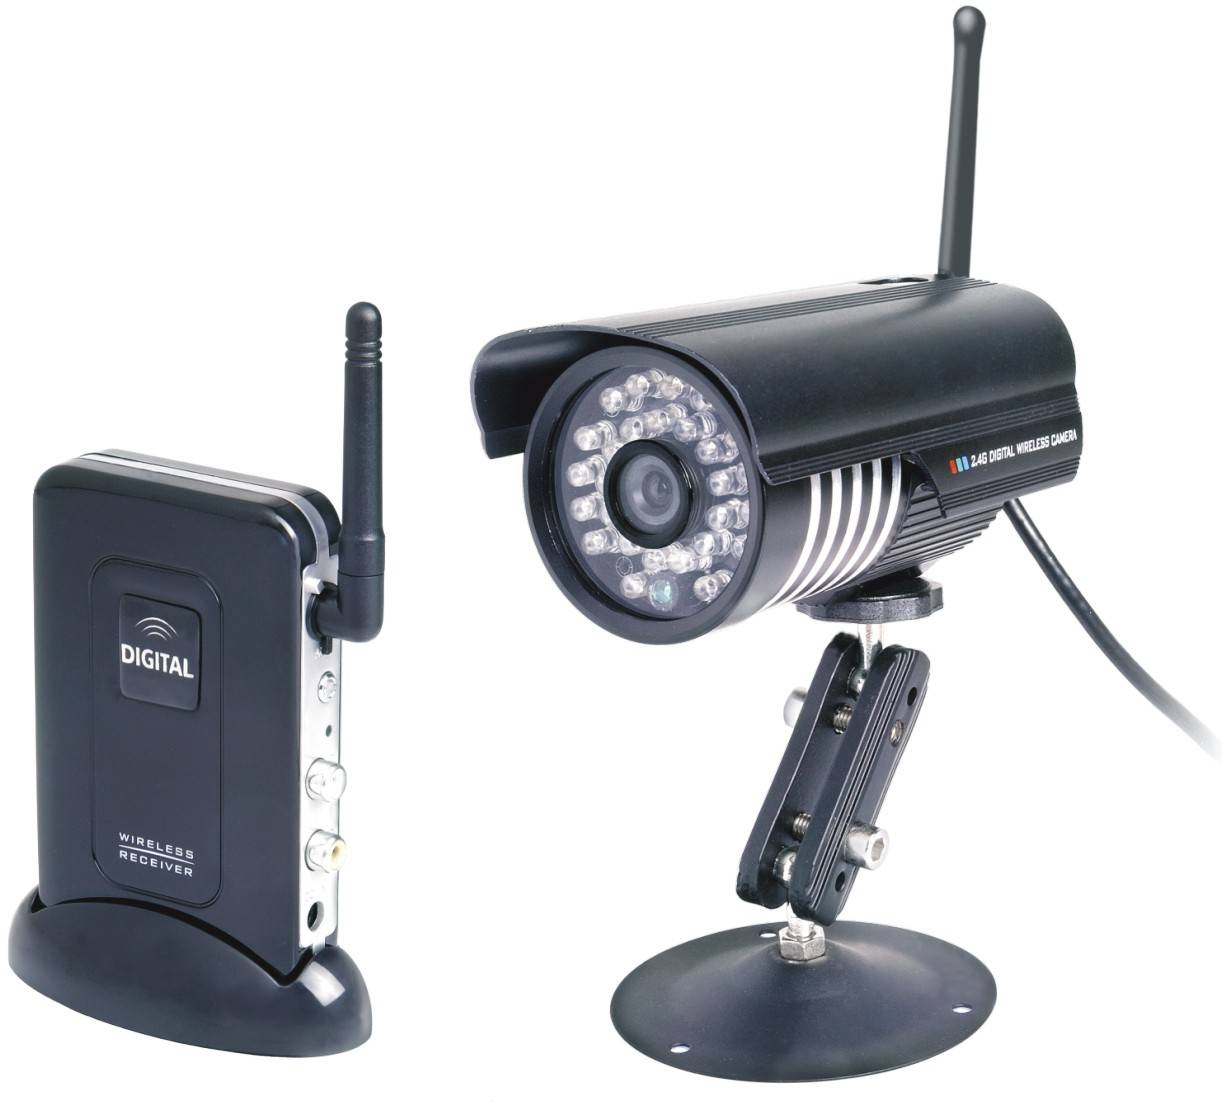 2.4Ghz Connect DVR To Record Waterproof IR Digital Wireless Security Camera System